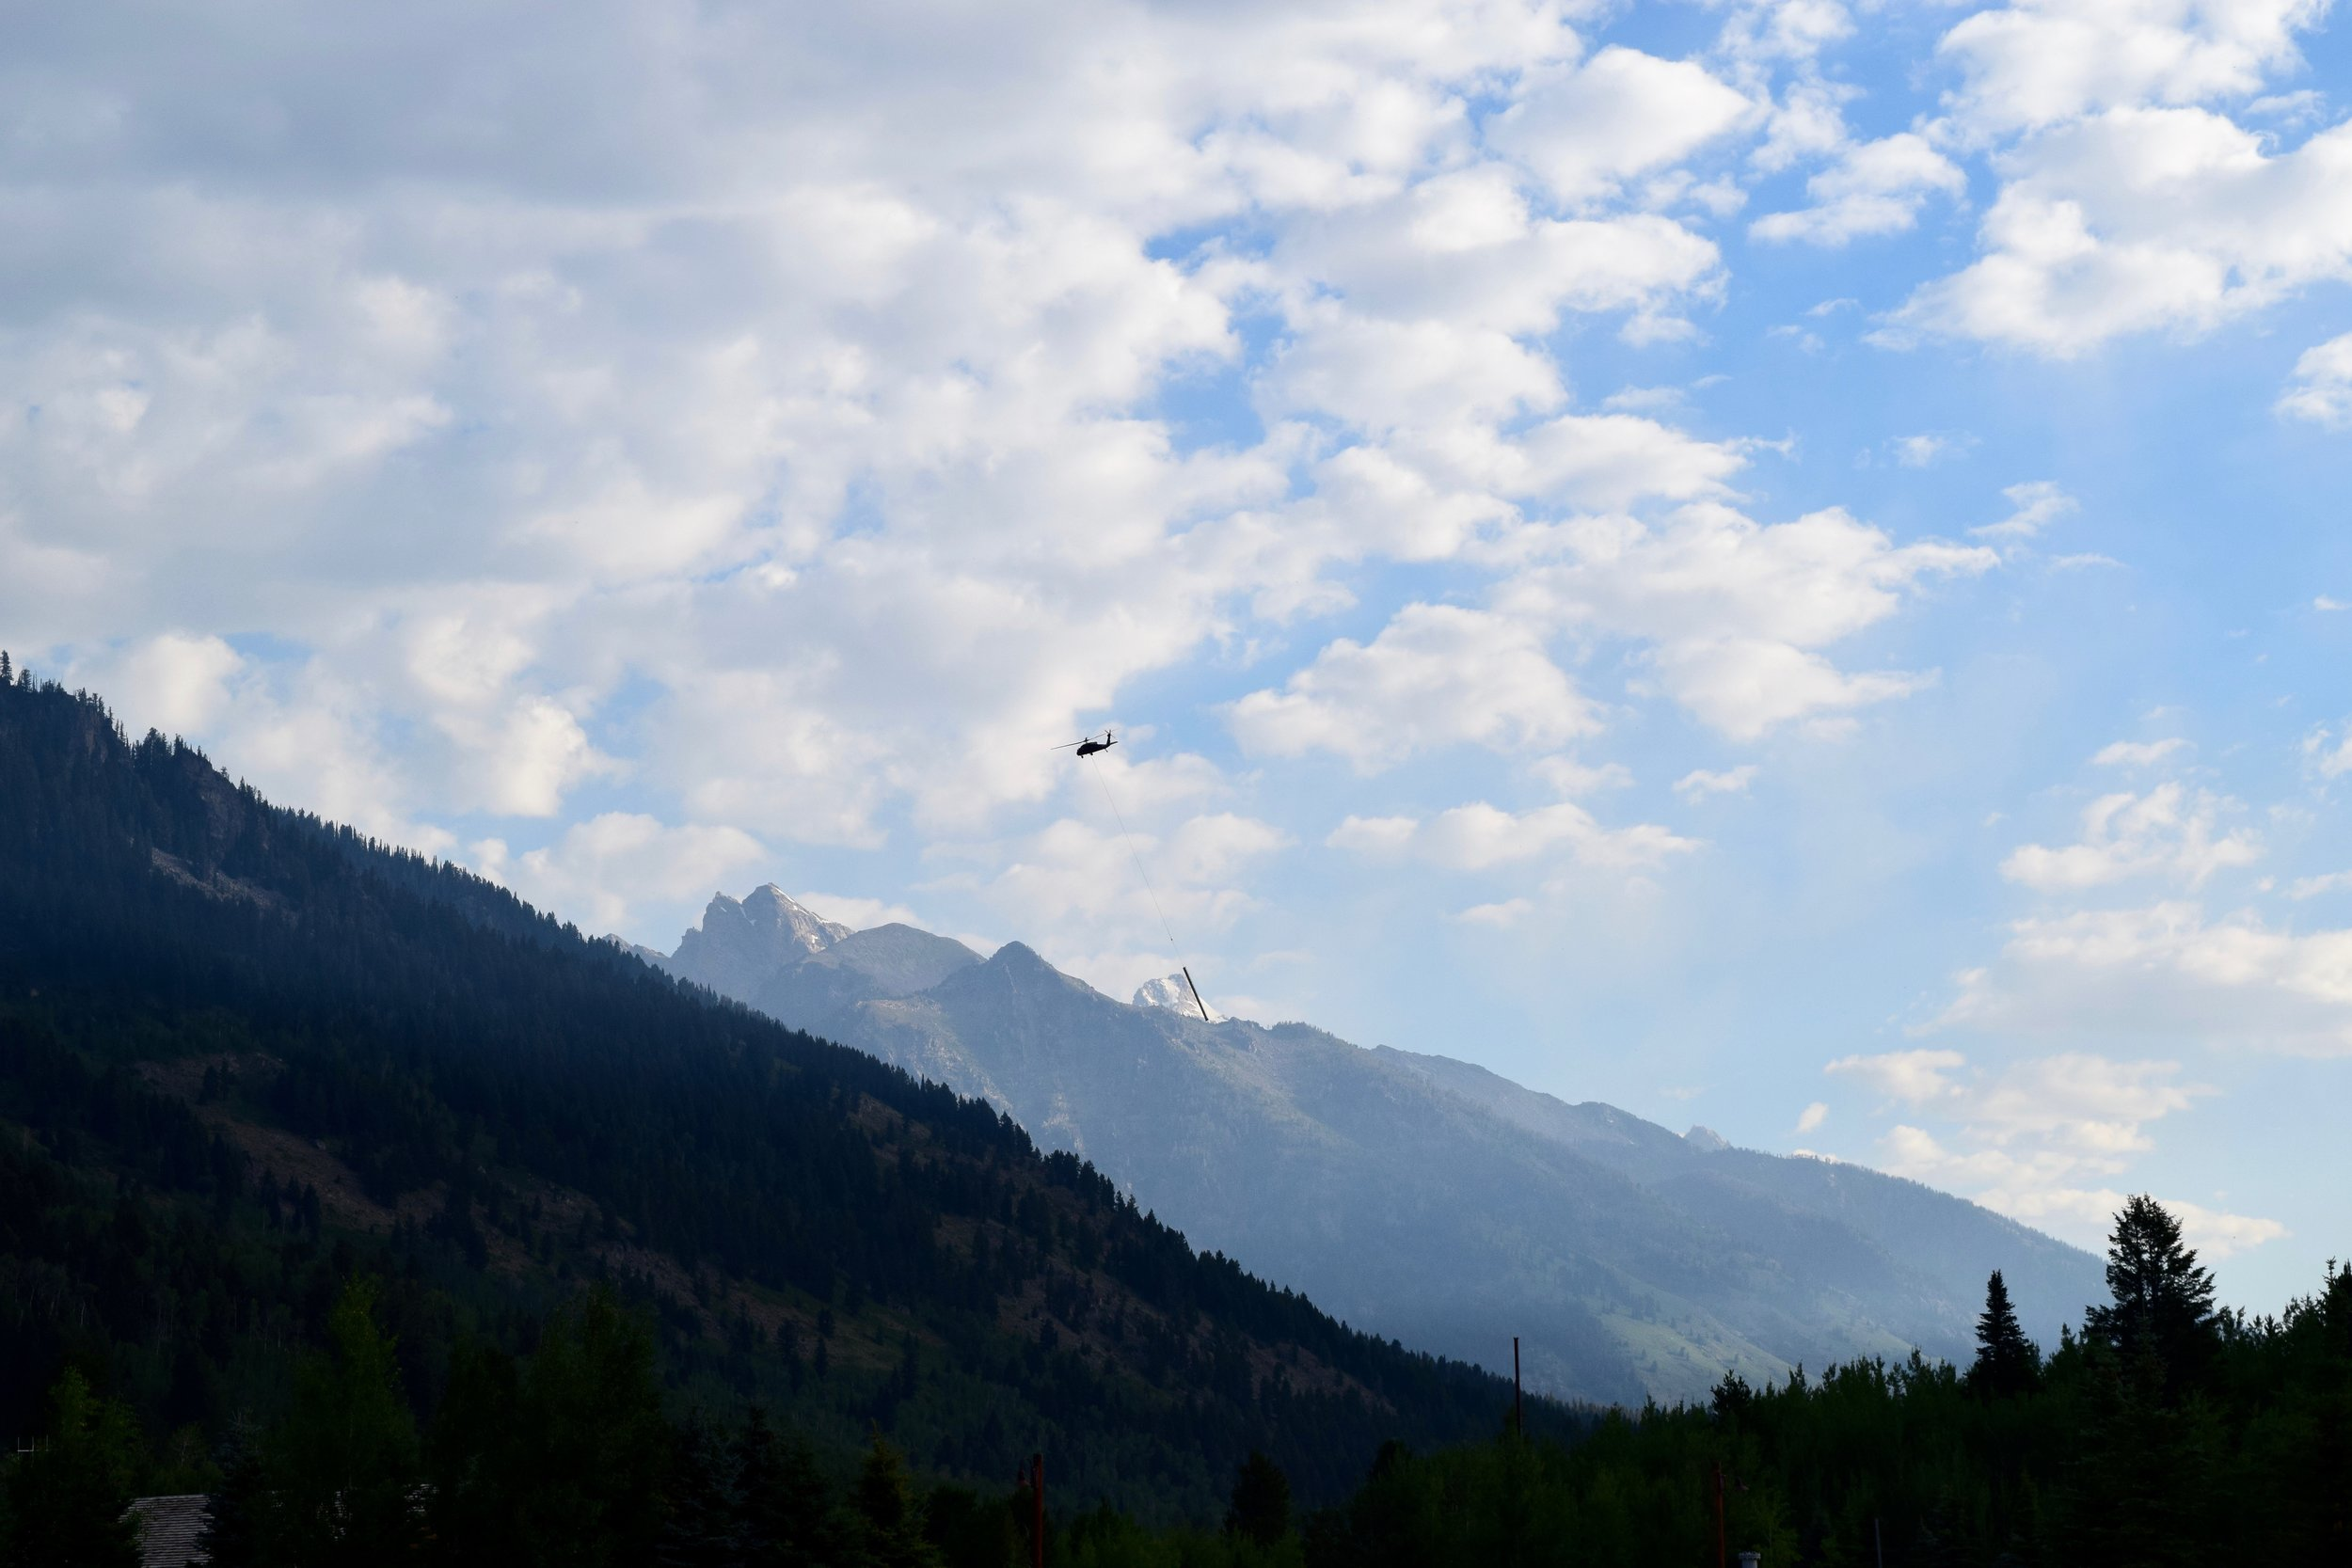 They were installing a new ski lift while we were there - this is a helicopter carrying all the different parts of the lift from the base of Teton Village to the side of the mountain.